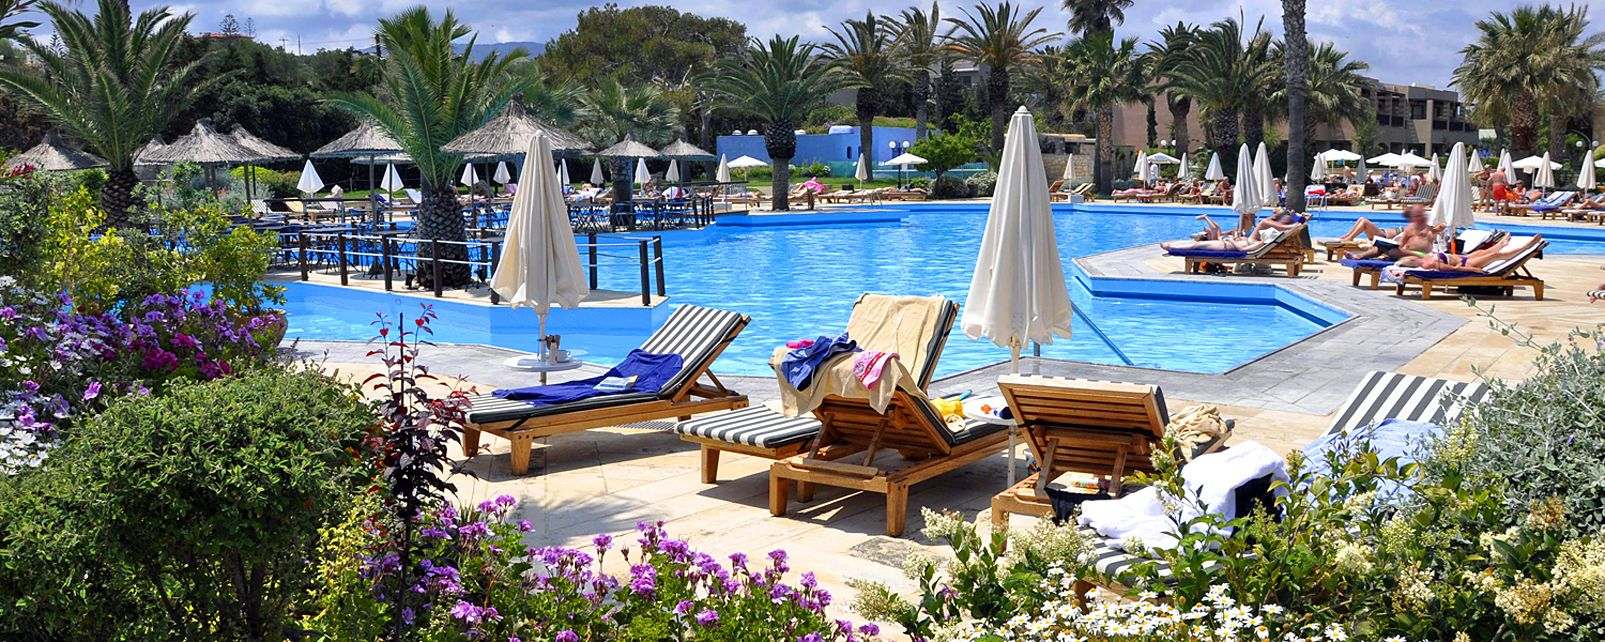 Hôtel Aquila Rithymna Beach Resort